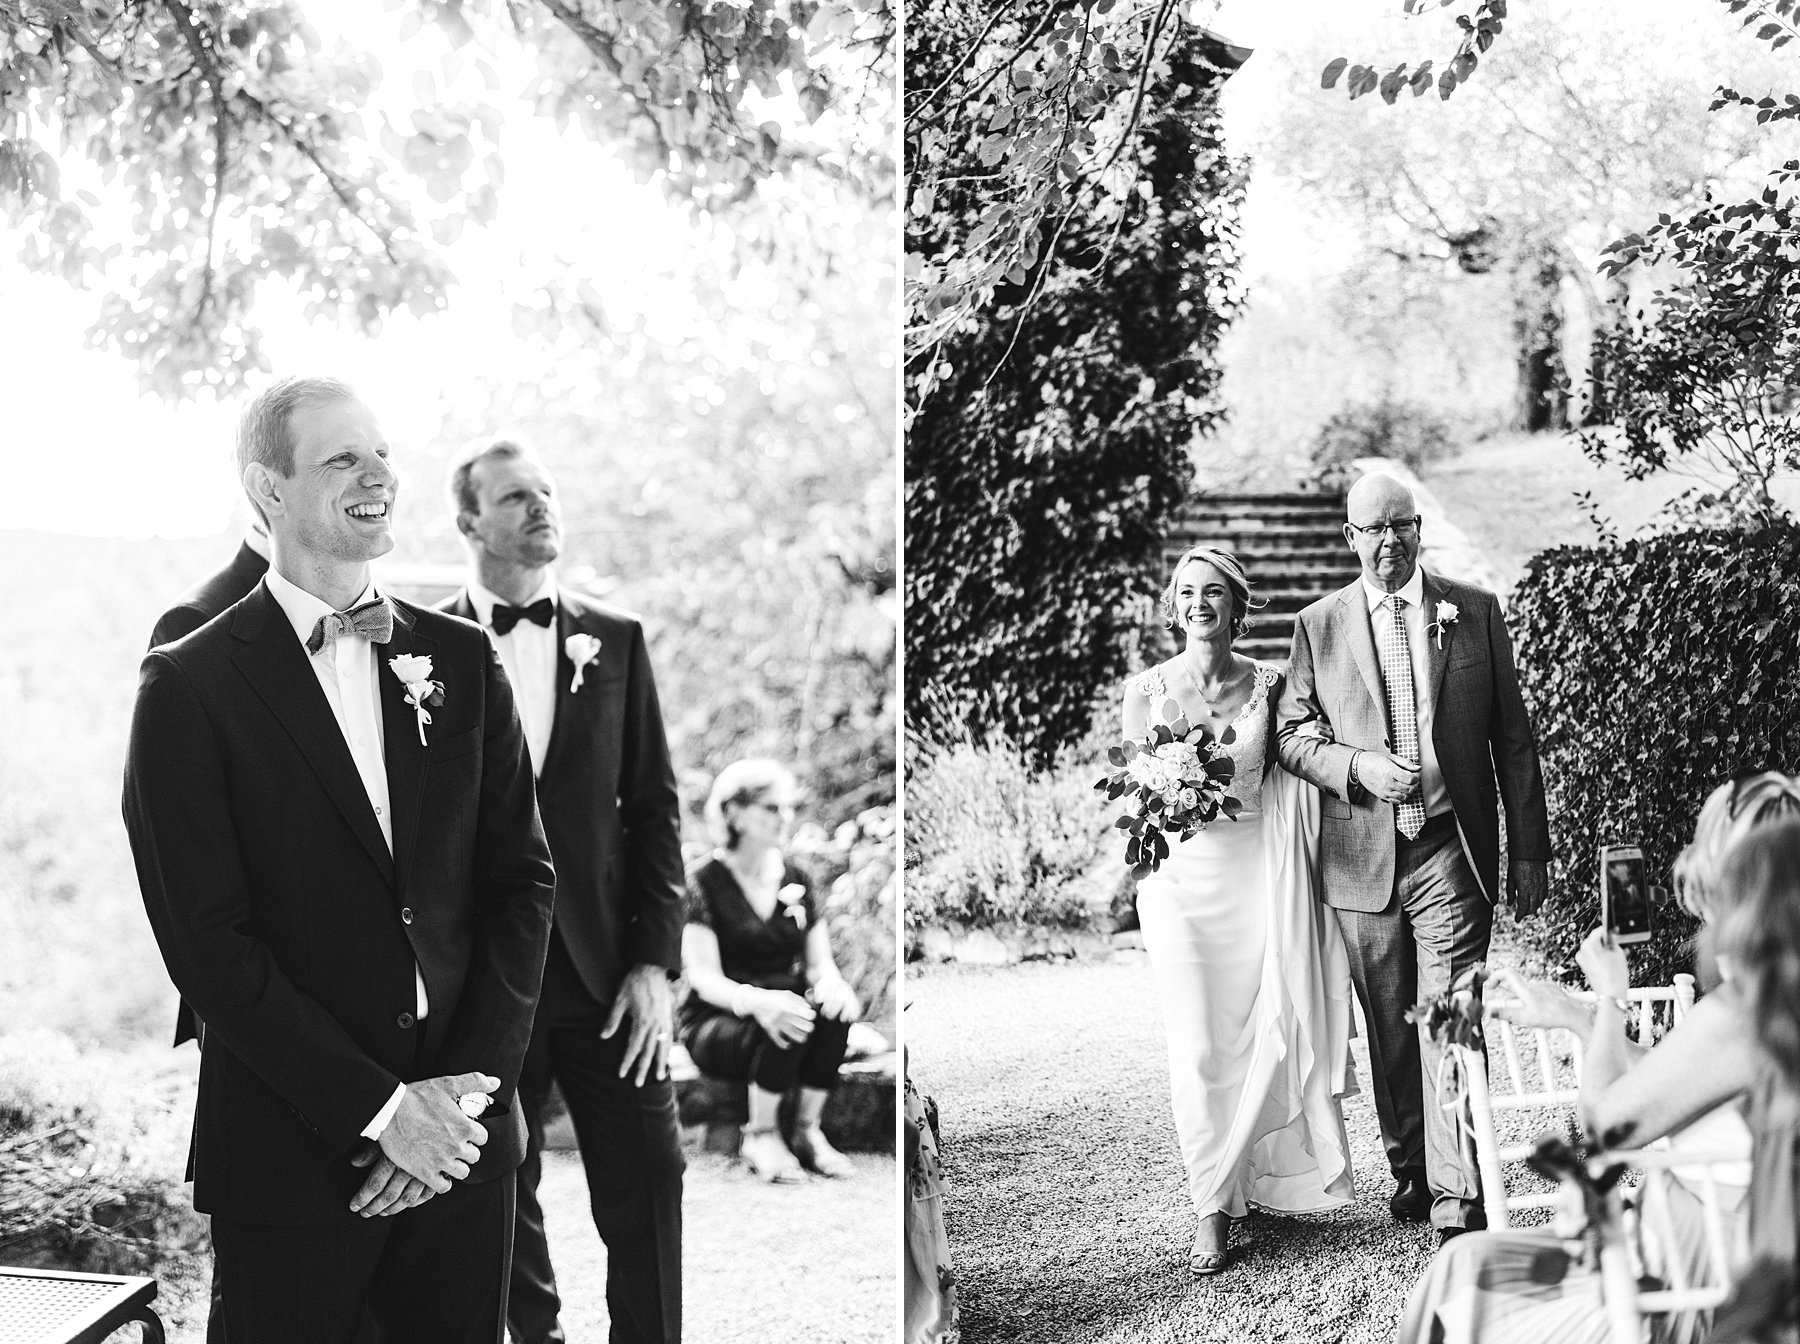 A special international wedding in the countryside of Umbria, Italy. Elegant Australian bride Jennifer walks with father in the symbolic ceremony held in a courtyard close to the Villa Monte Solare, surrounded by greenery and decorated with delicate flowers